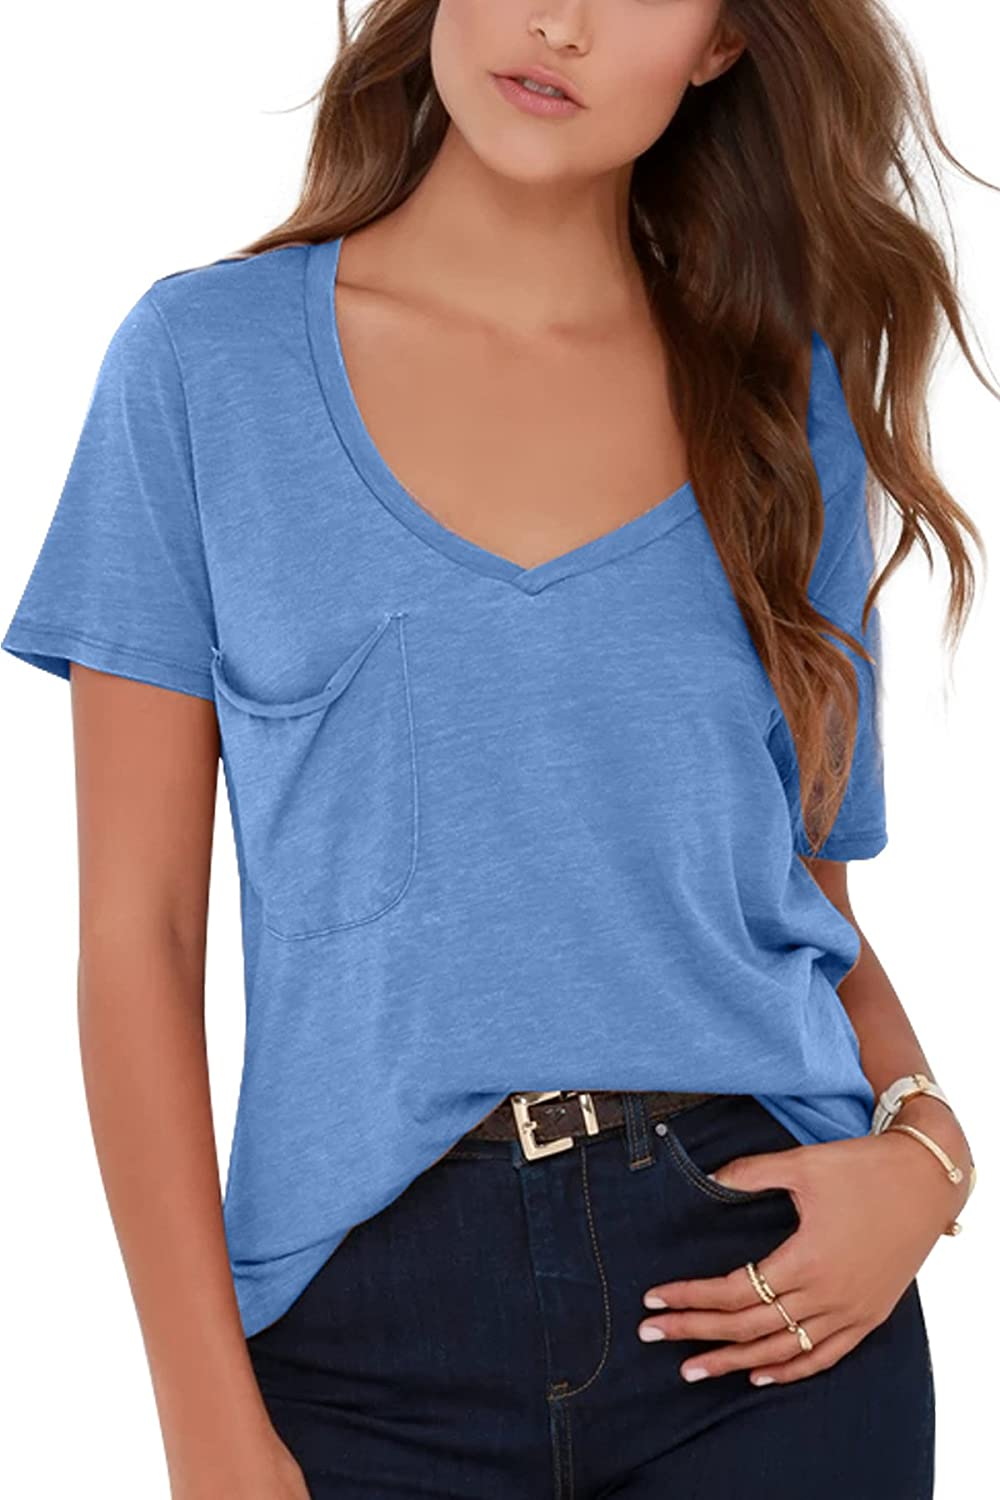 Yidarton Women Tshirt Top V Neck Short Sleeve Shirt Loose Blouse(Short)(sb,m) bluee